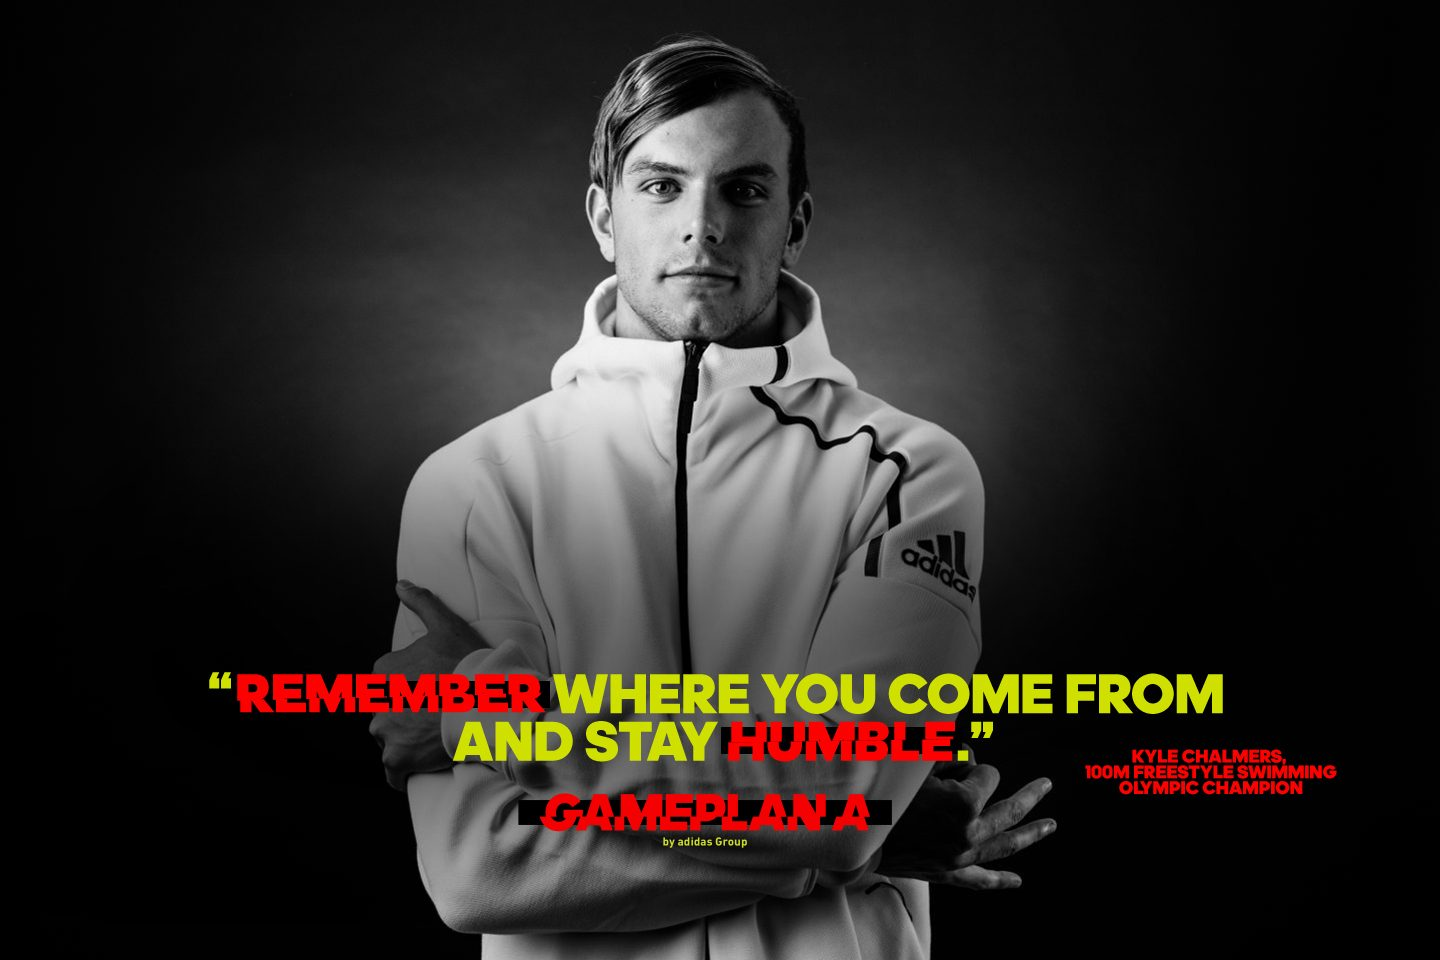 kyle chalmers swimmer olympic swimming champion quote